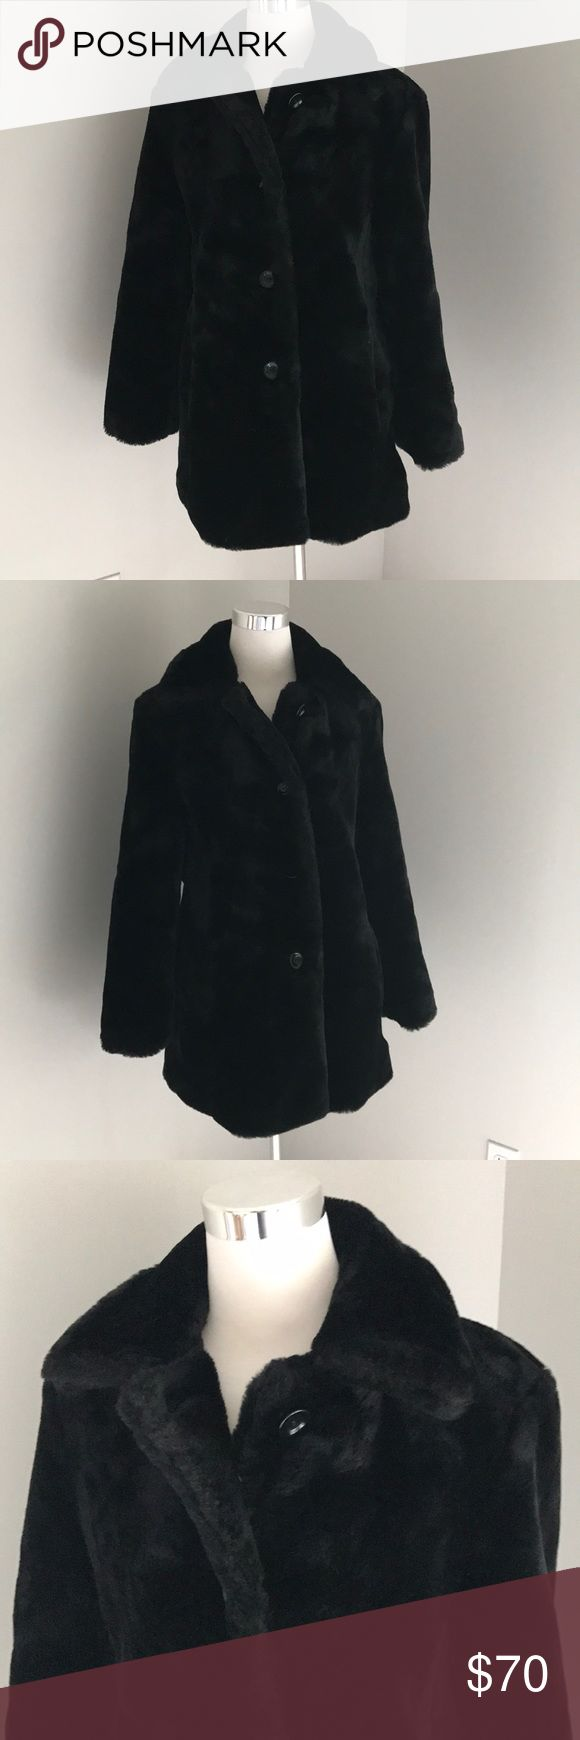 United colors of Benetton faux fur coat United colors of Benetton black faux fur coat. Size small. Not sure I'm going to give it up, must sell at the right price! United Colors Of Benetton Jackets & Coats